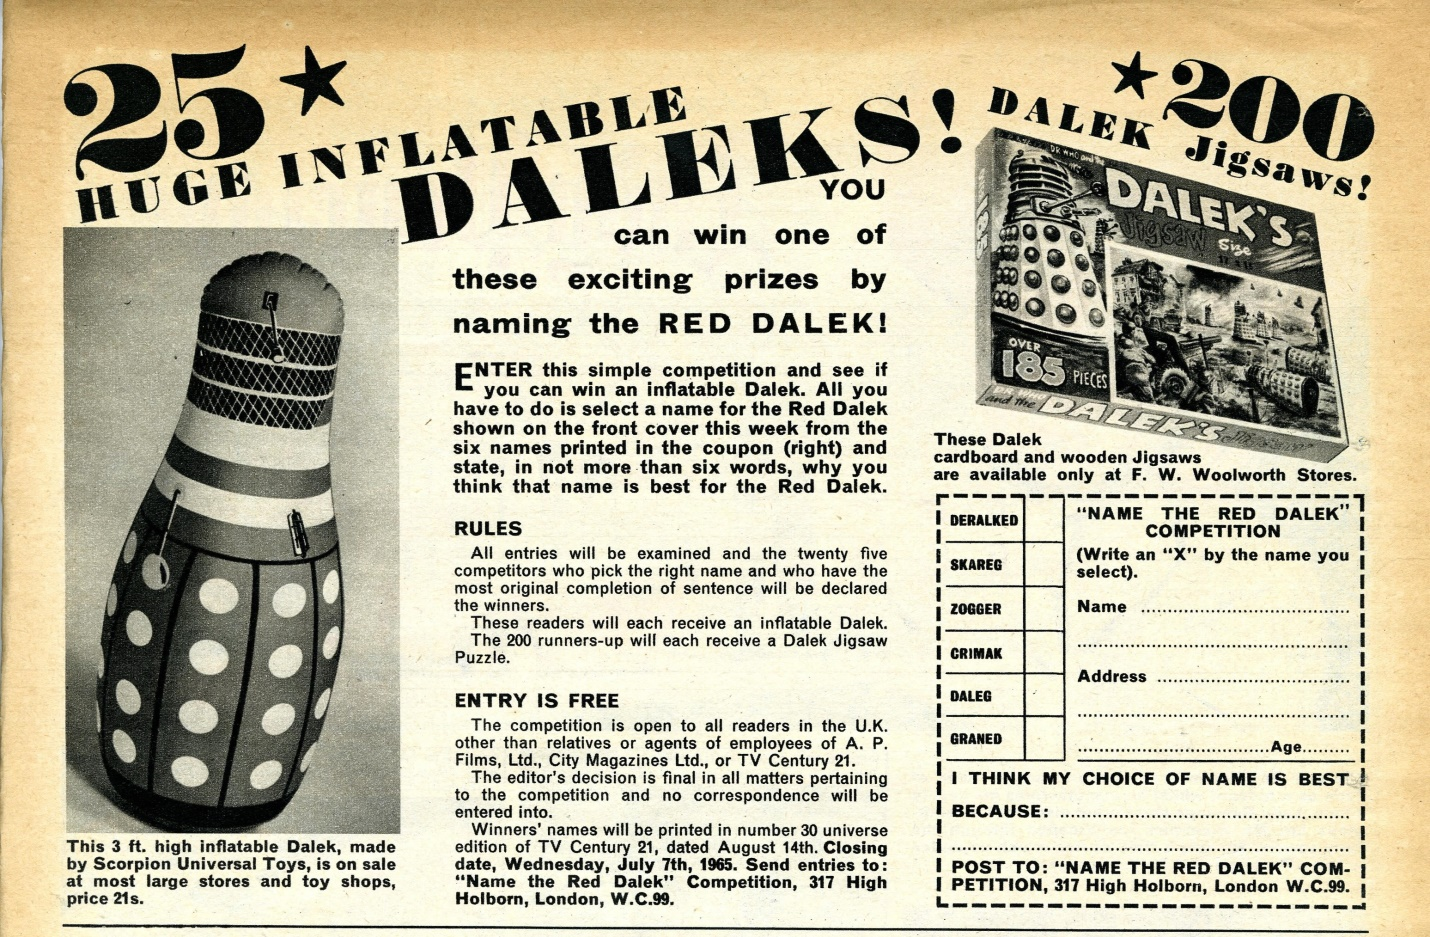 TV Century 21 #23, 26 June 2065 (1965) containing competition with Inflatable Daleks and Dalek jigsaws as prizes